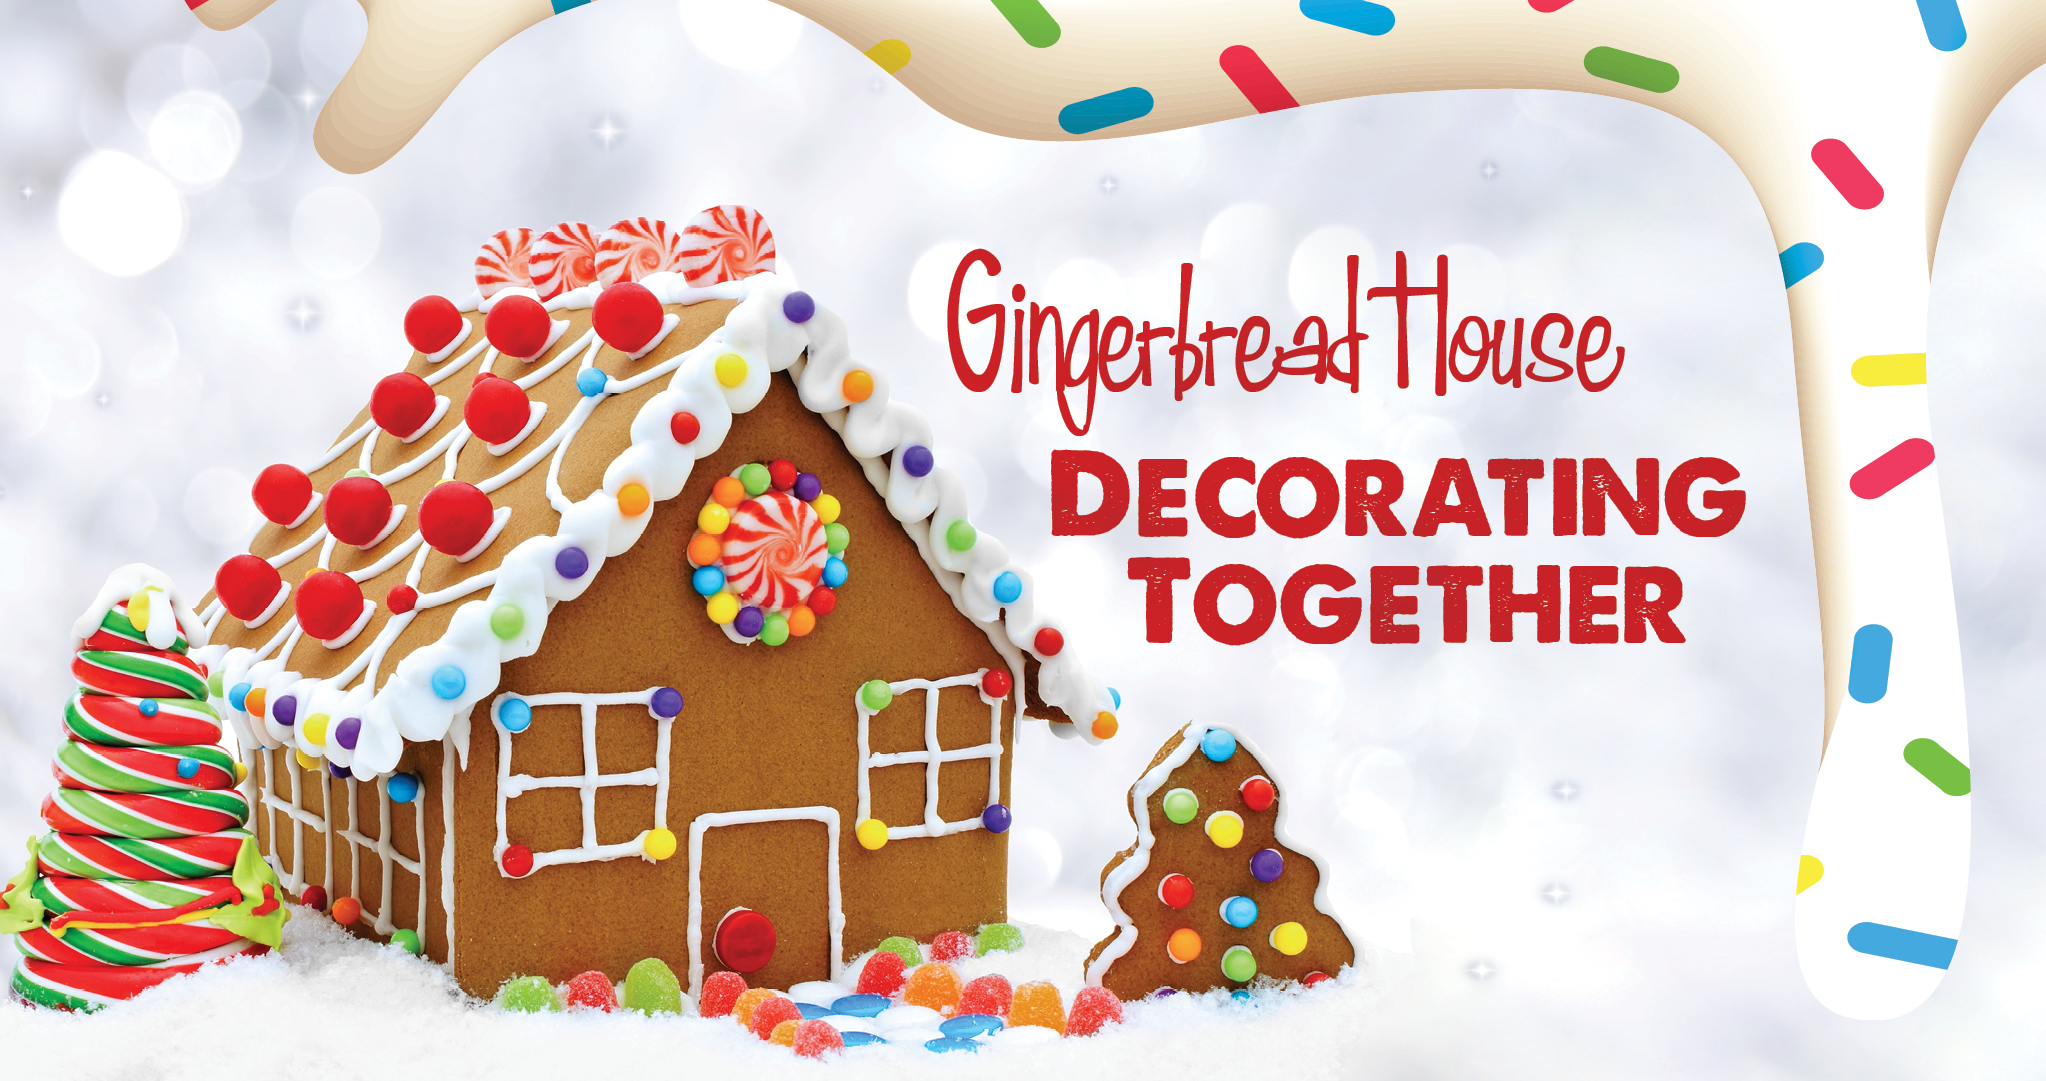 Gingerbread House Decorating Together